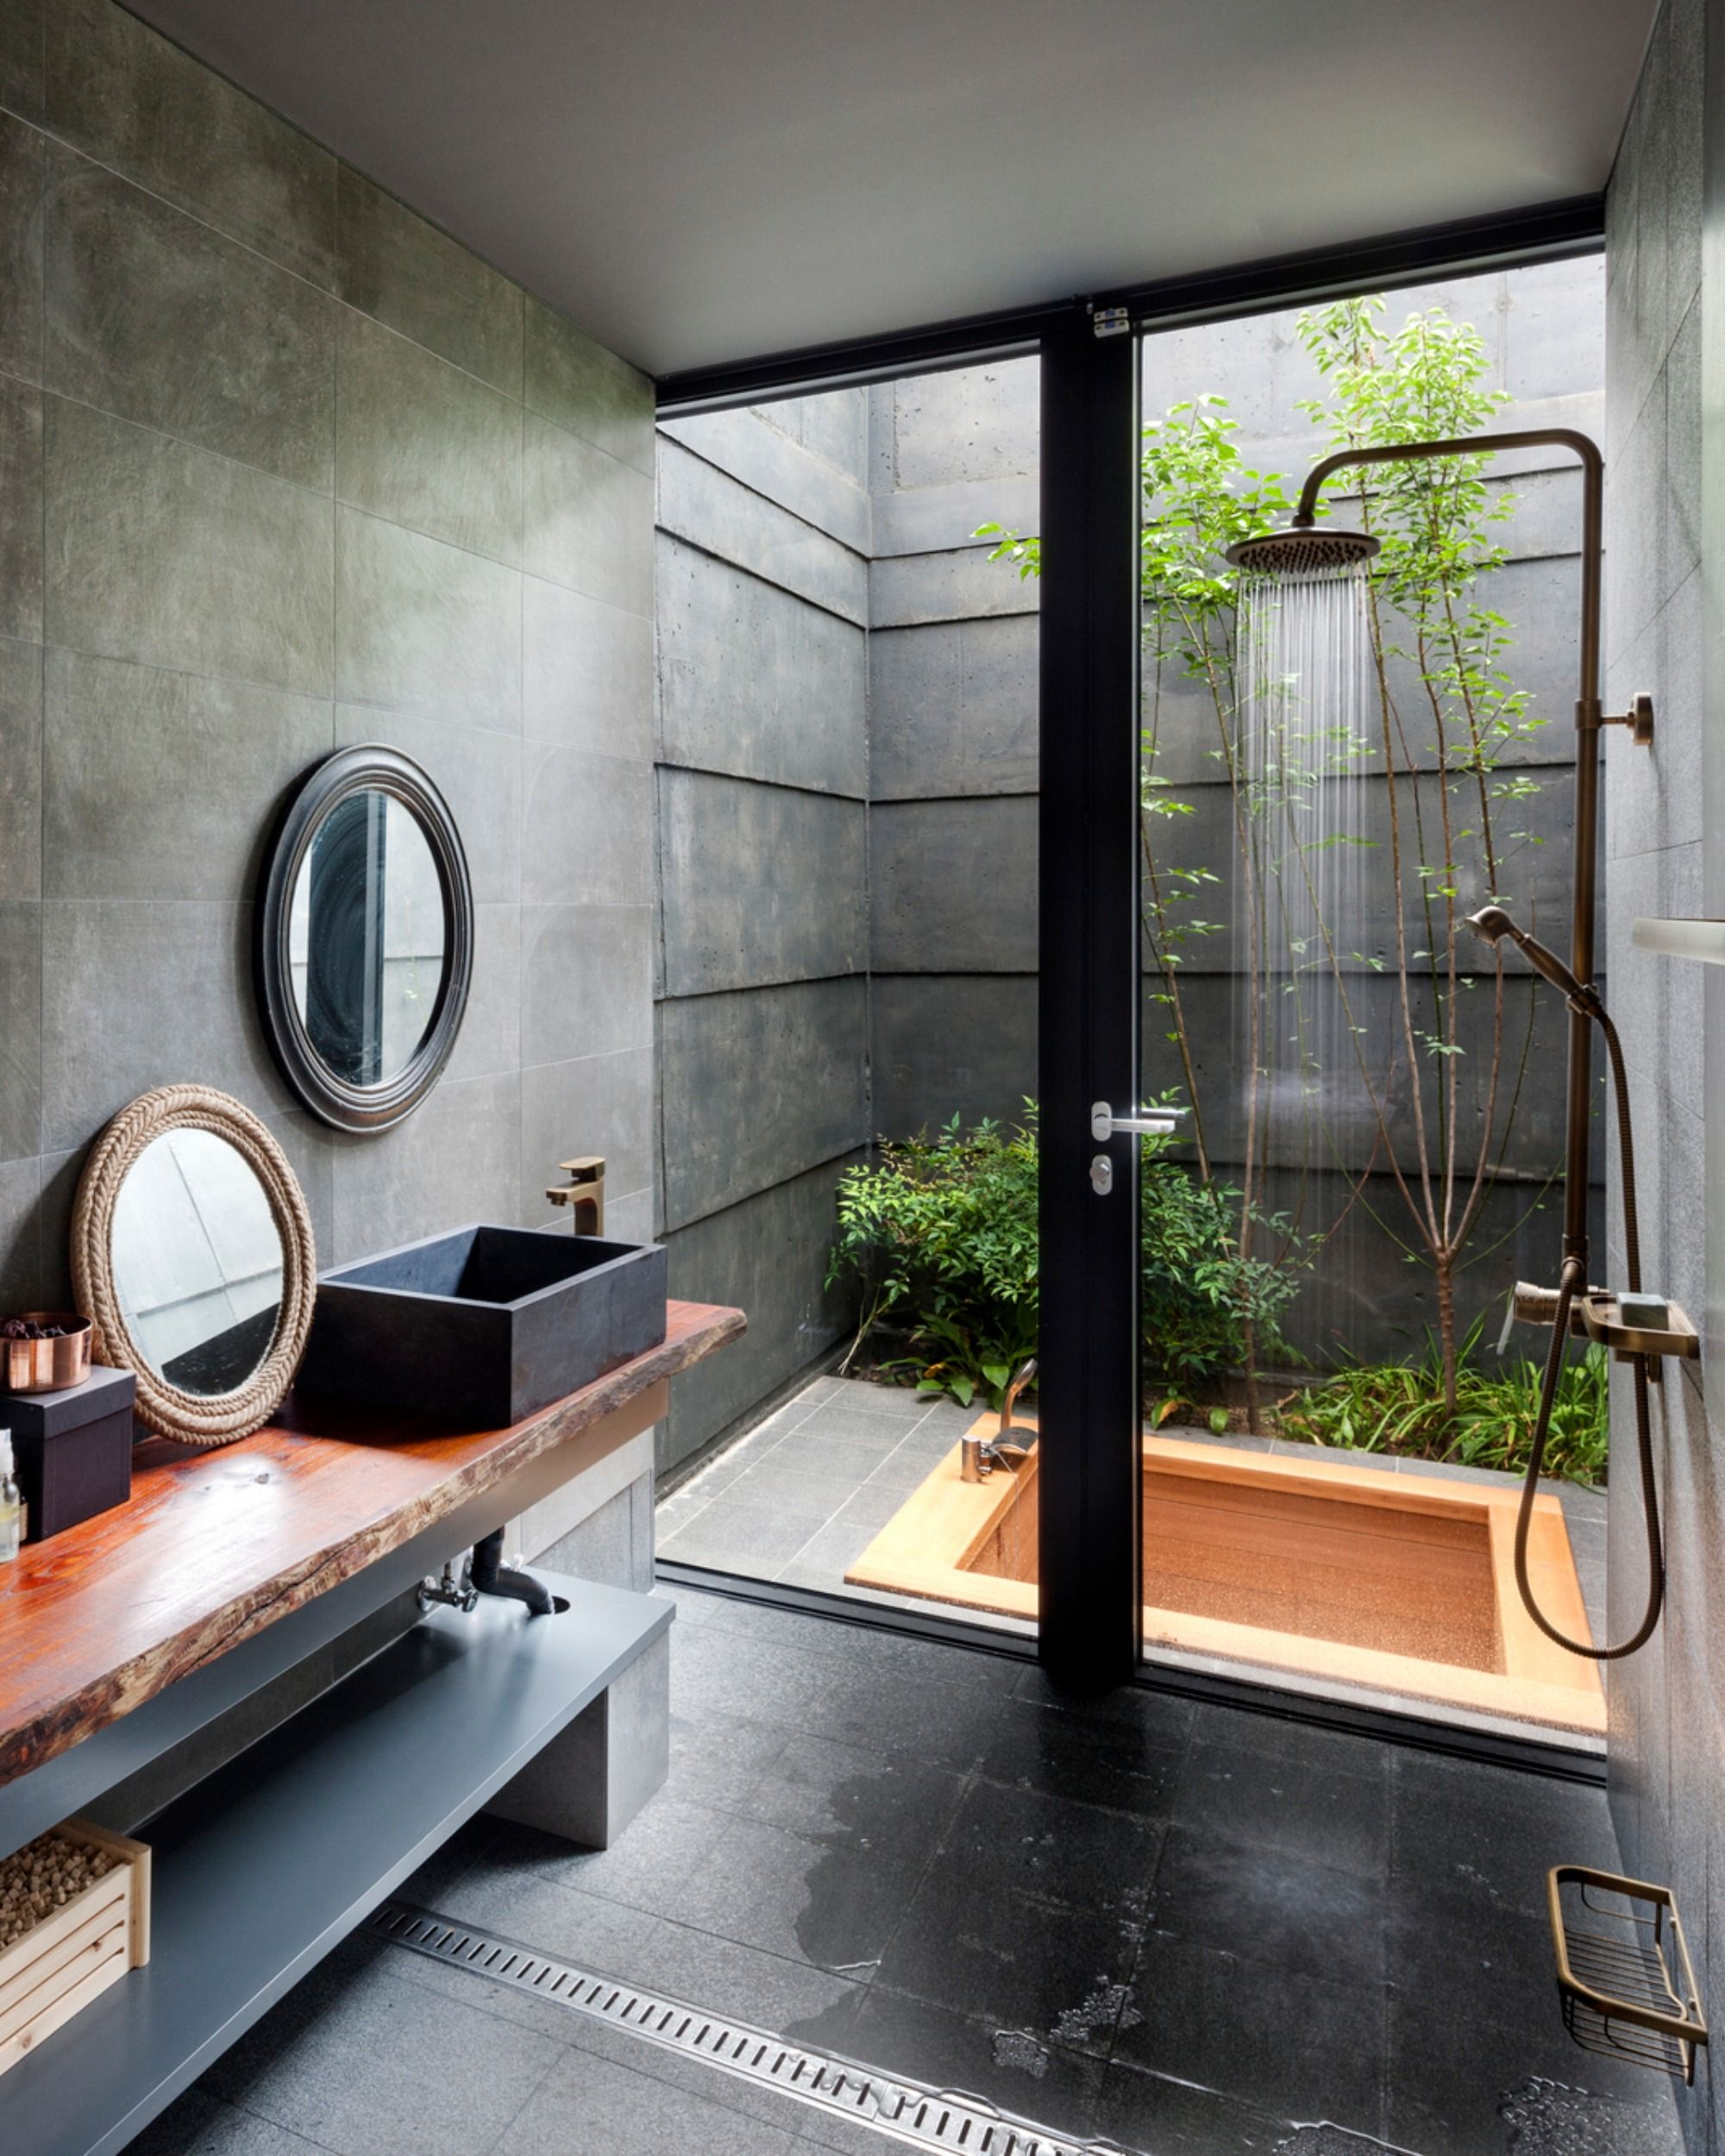 Unique and relaxing outdoor shower in this bathroom design ...